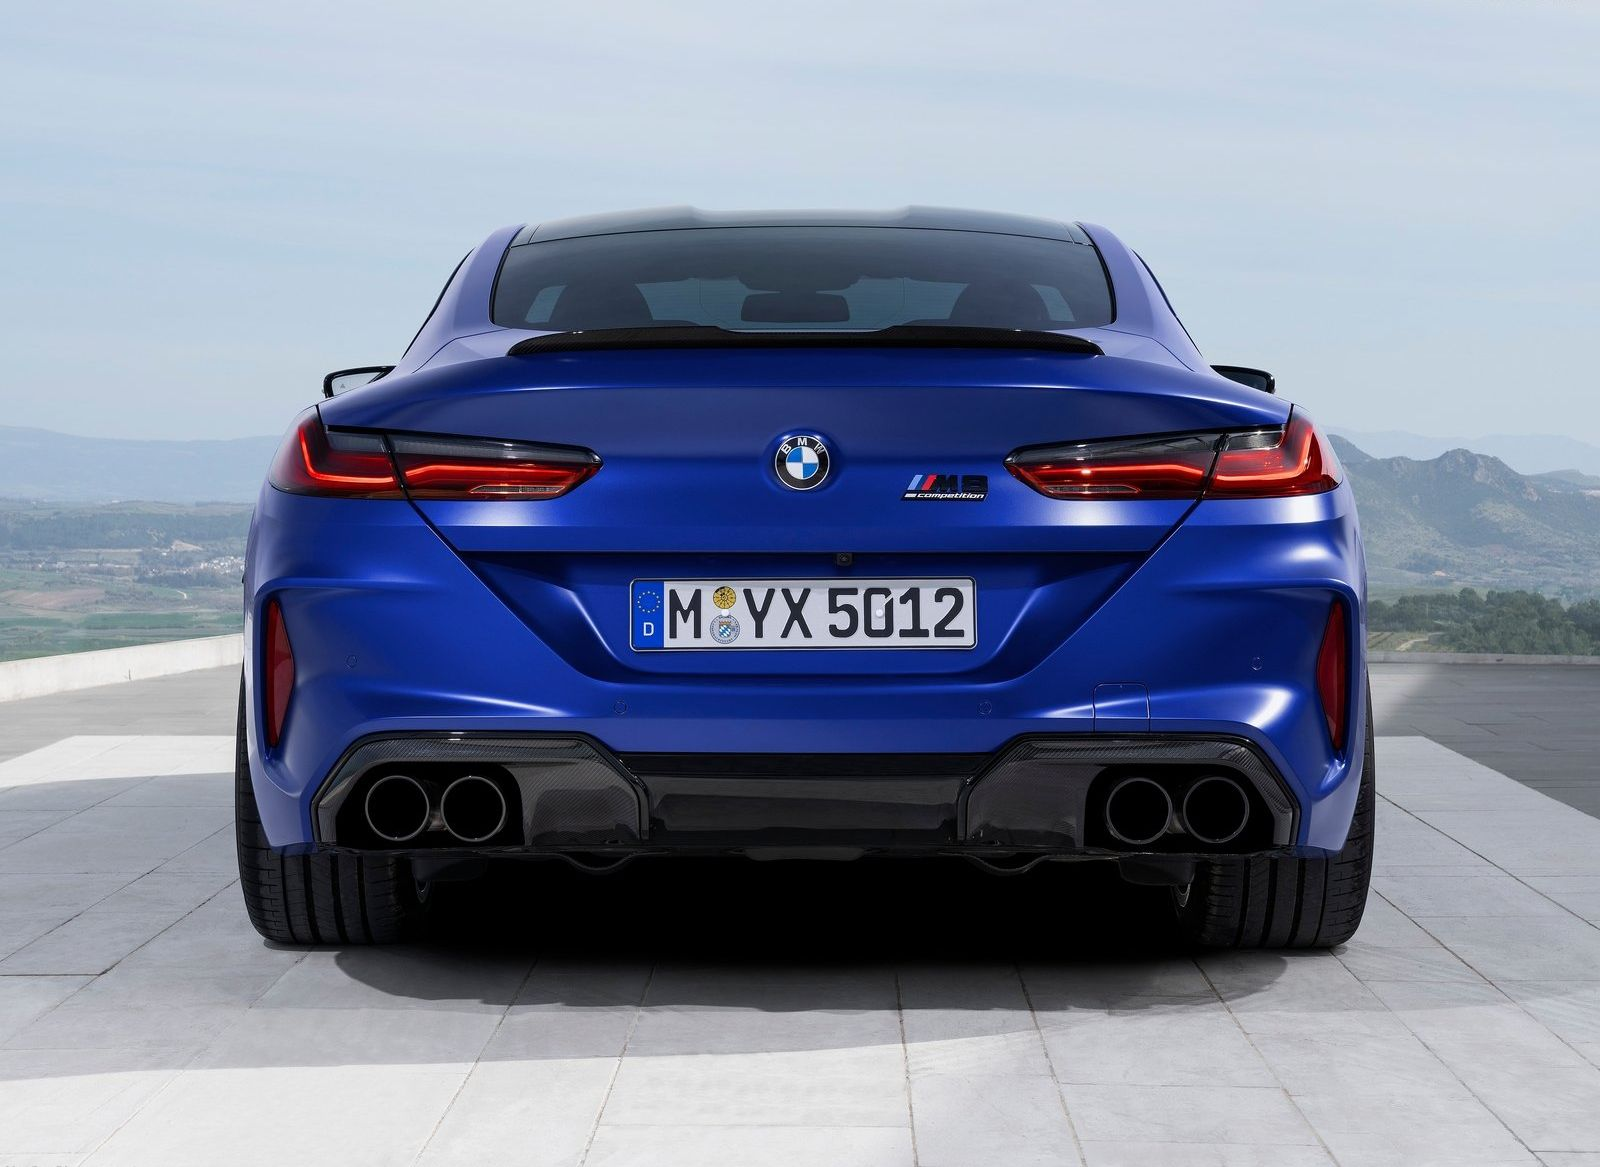 The new BMW M8 Coupe and Convertible are finally here, and